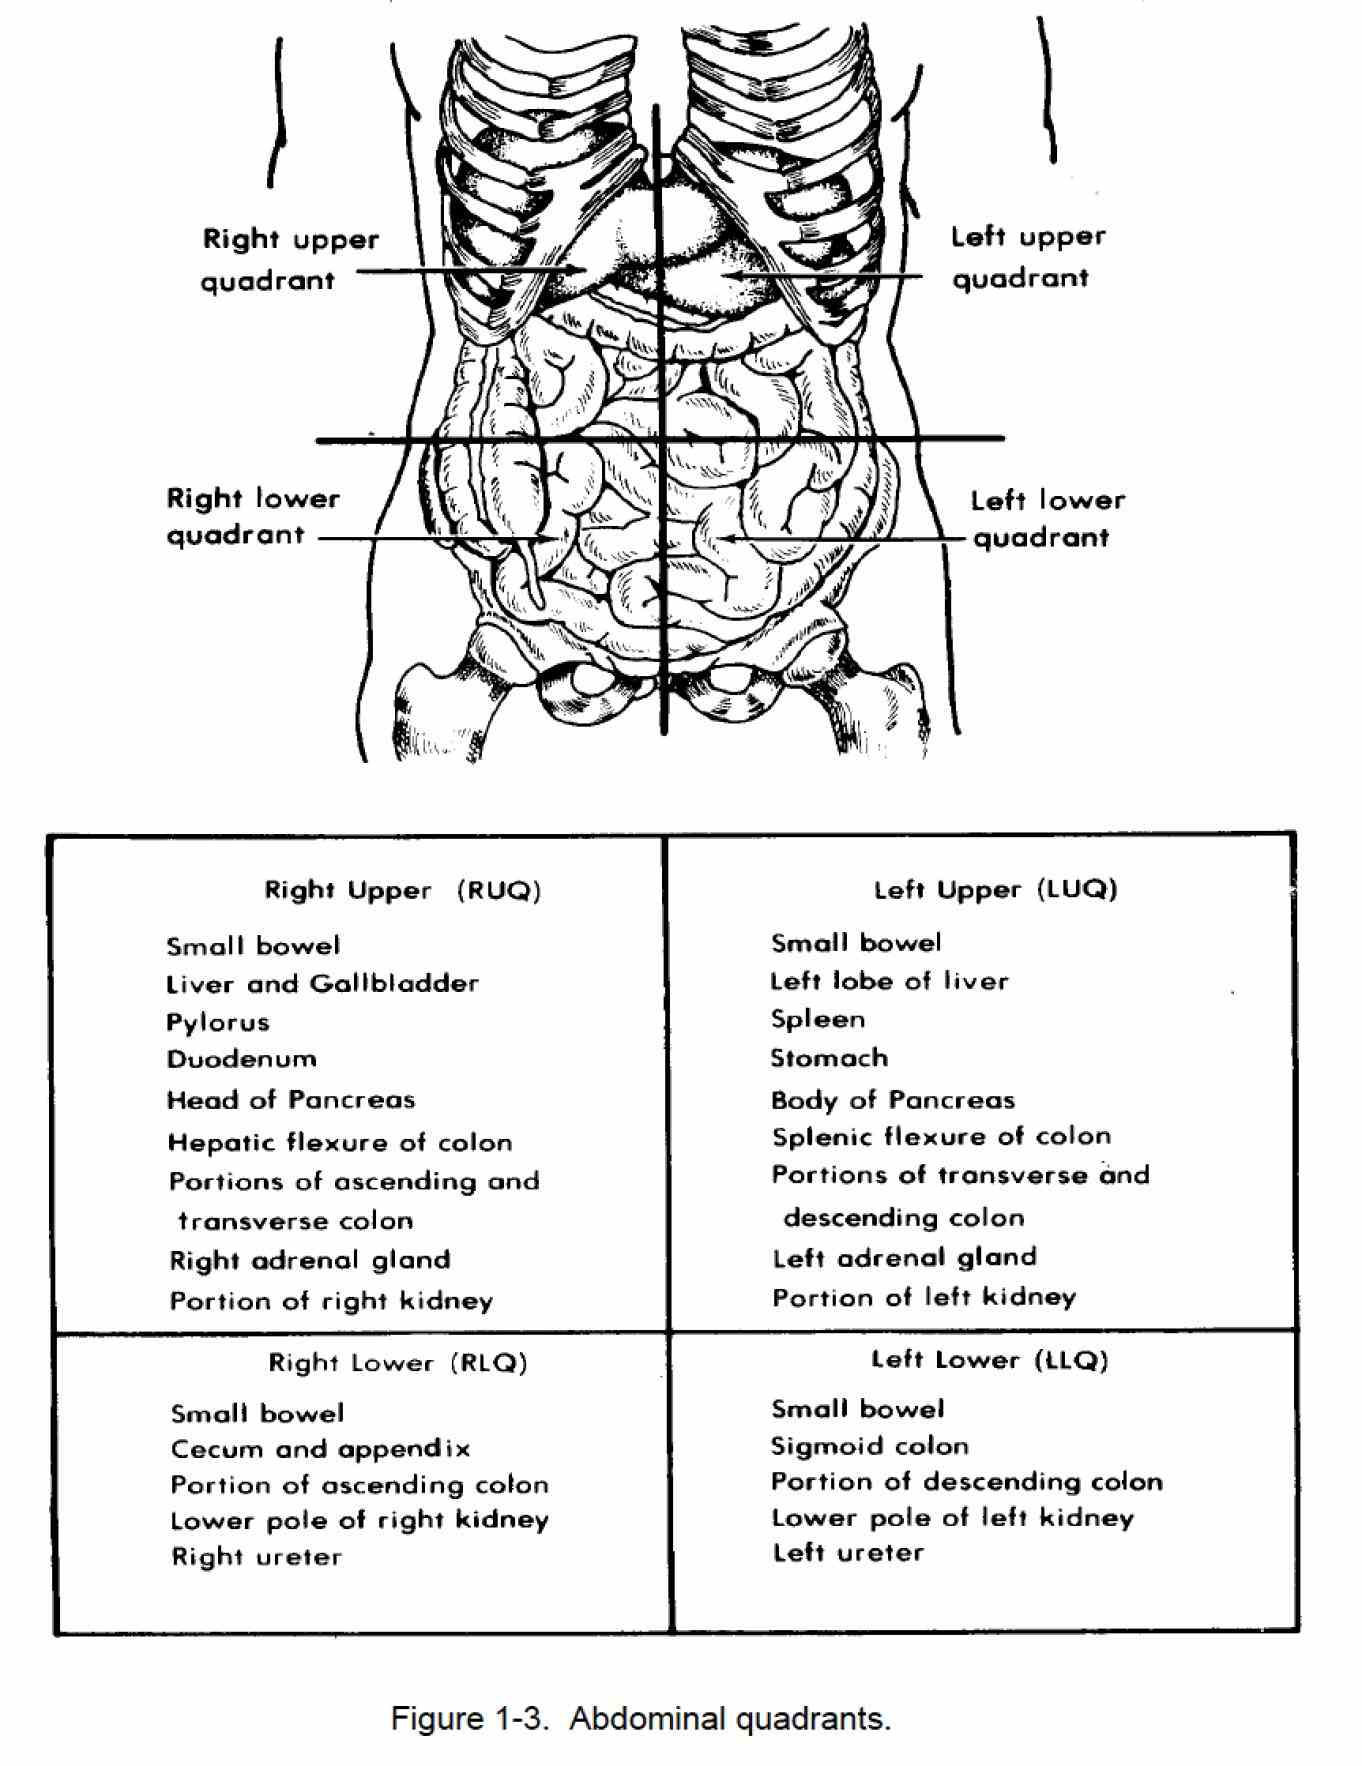 provides a detailed image and definition of the learn about its function parts abdominal de Picture Of Abdominal Quadrants